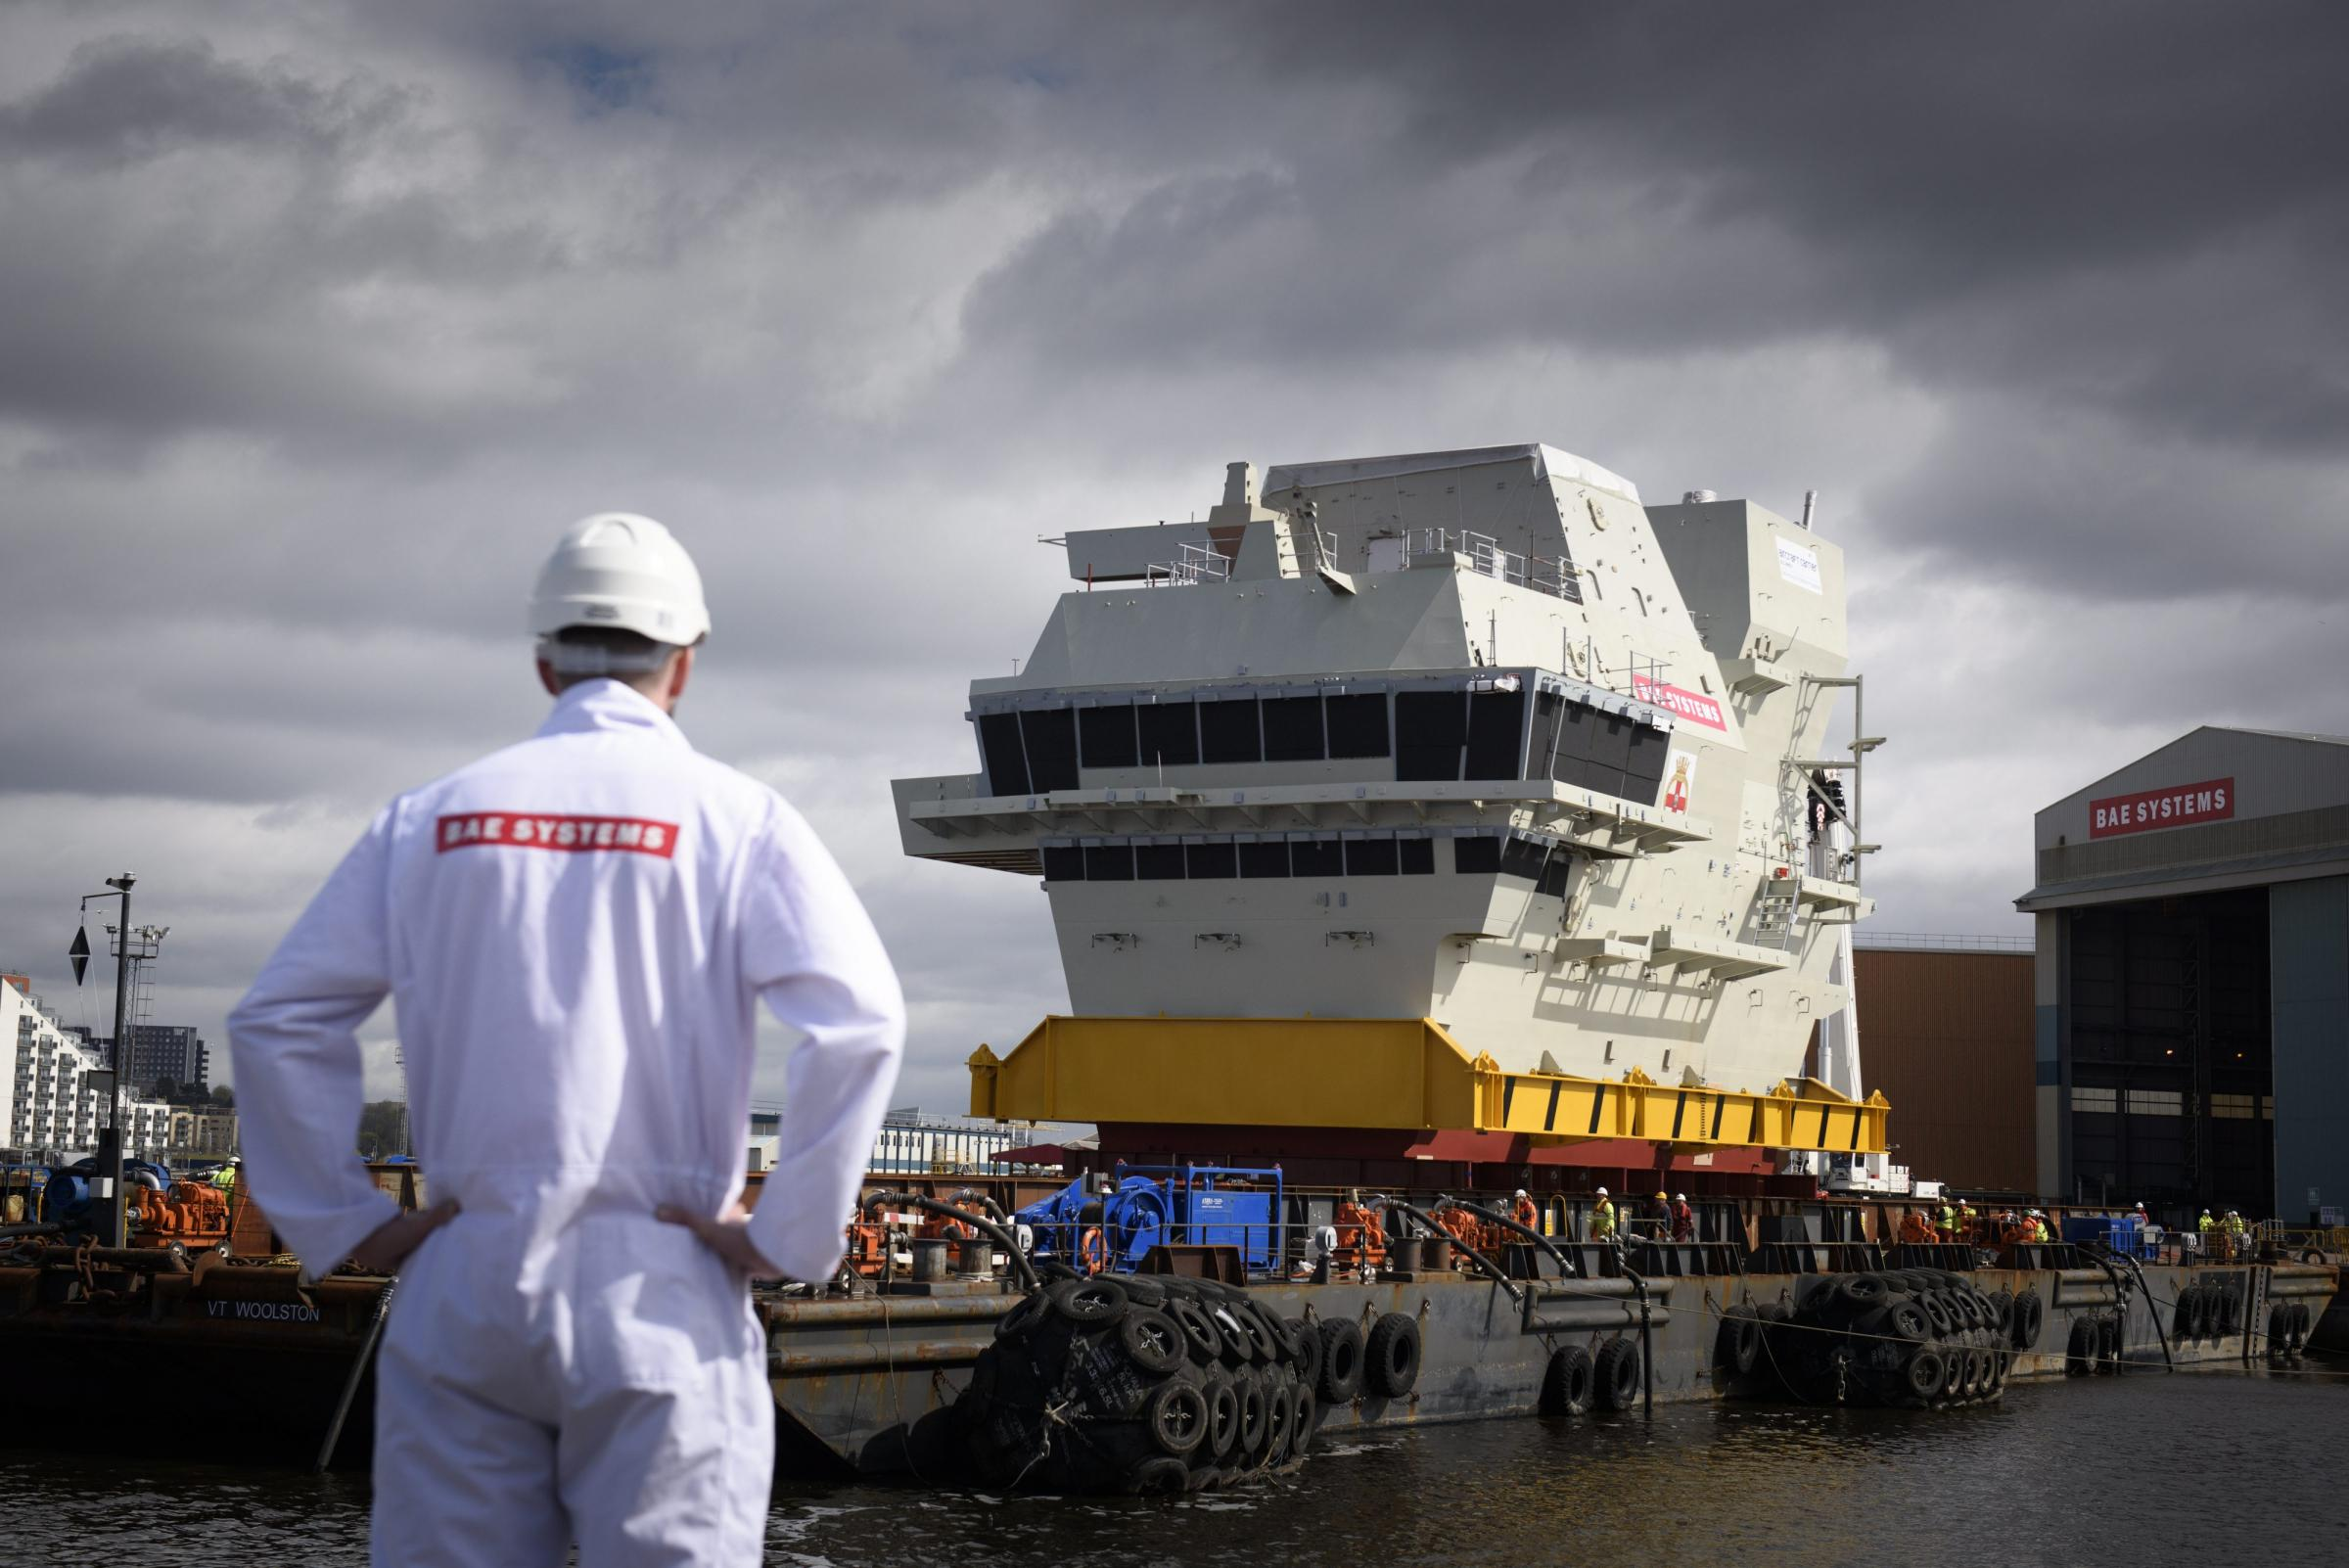 All hands on deck with BAE Systems to defend the planet from climate change